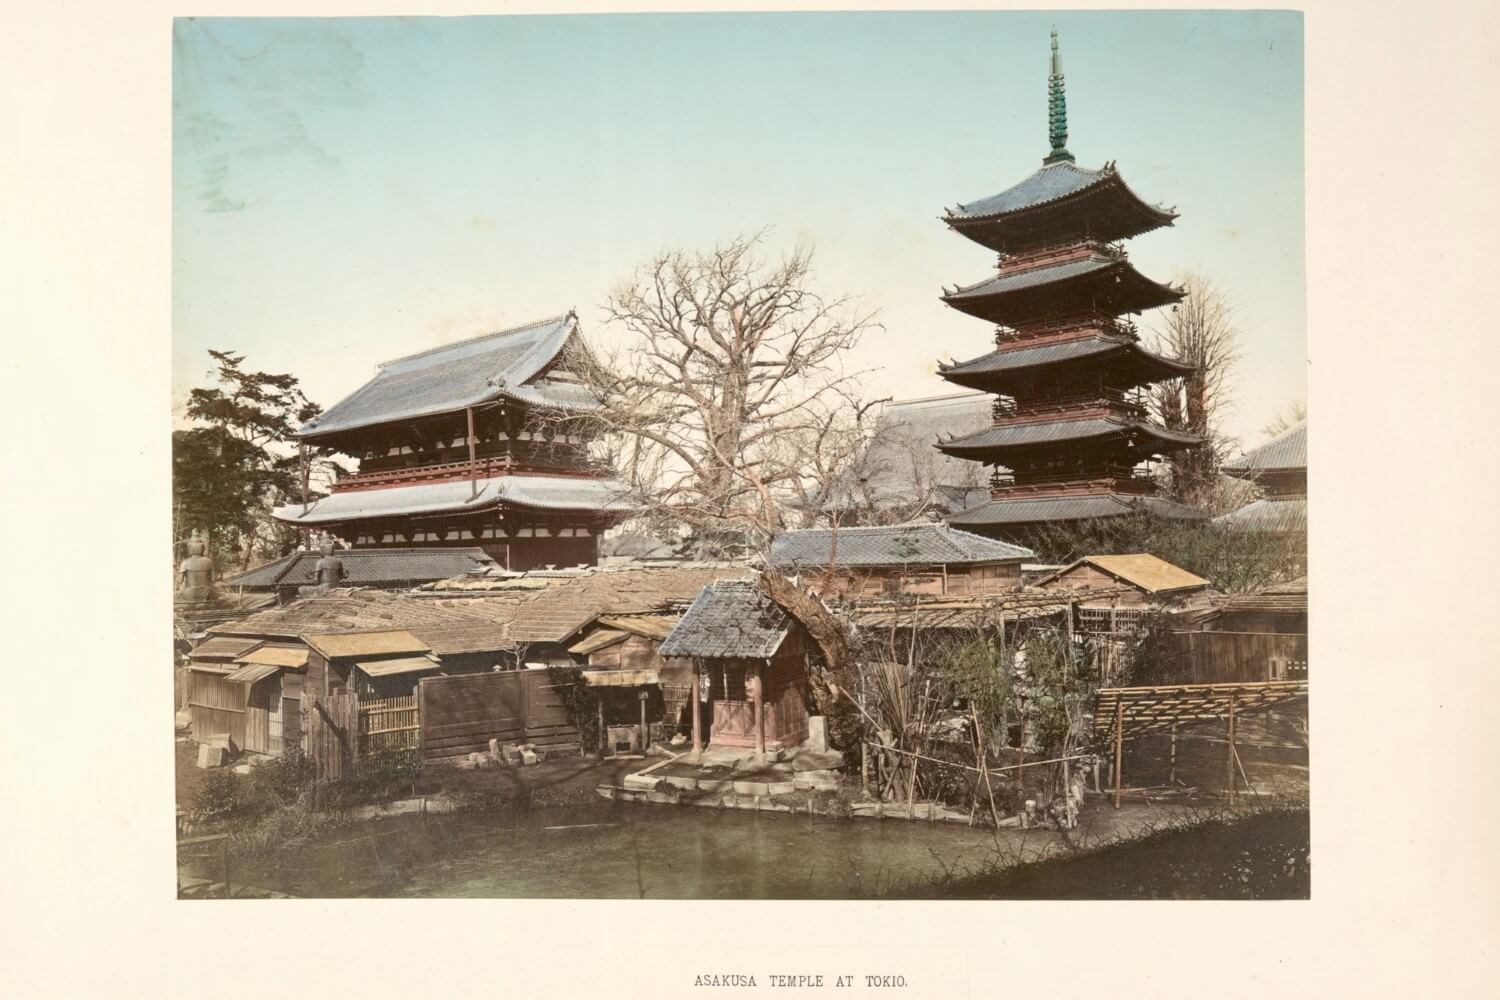 The history of the Asakusa Kannon Temple in Tokyo